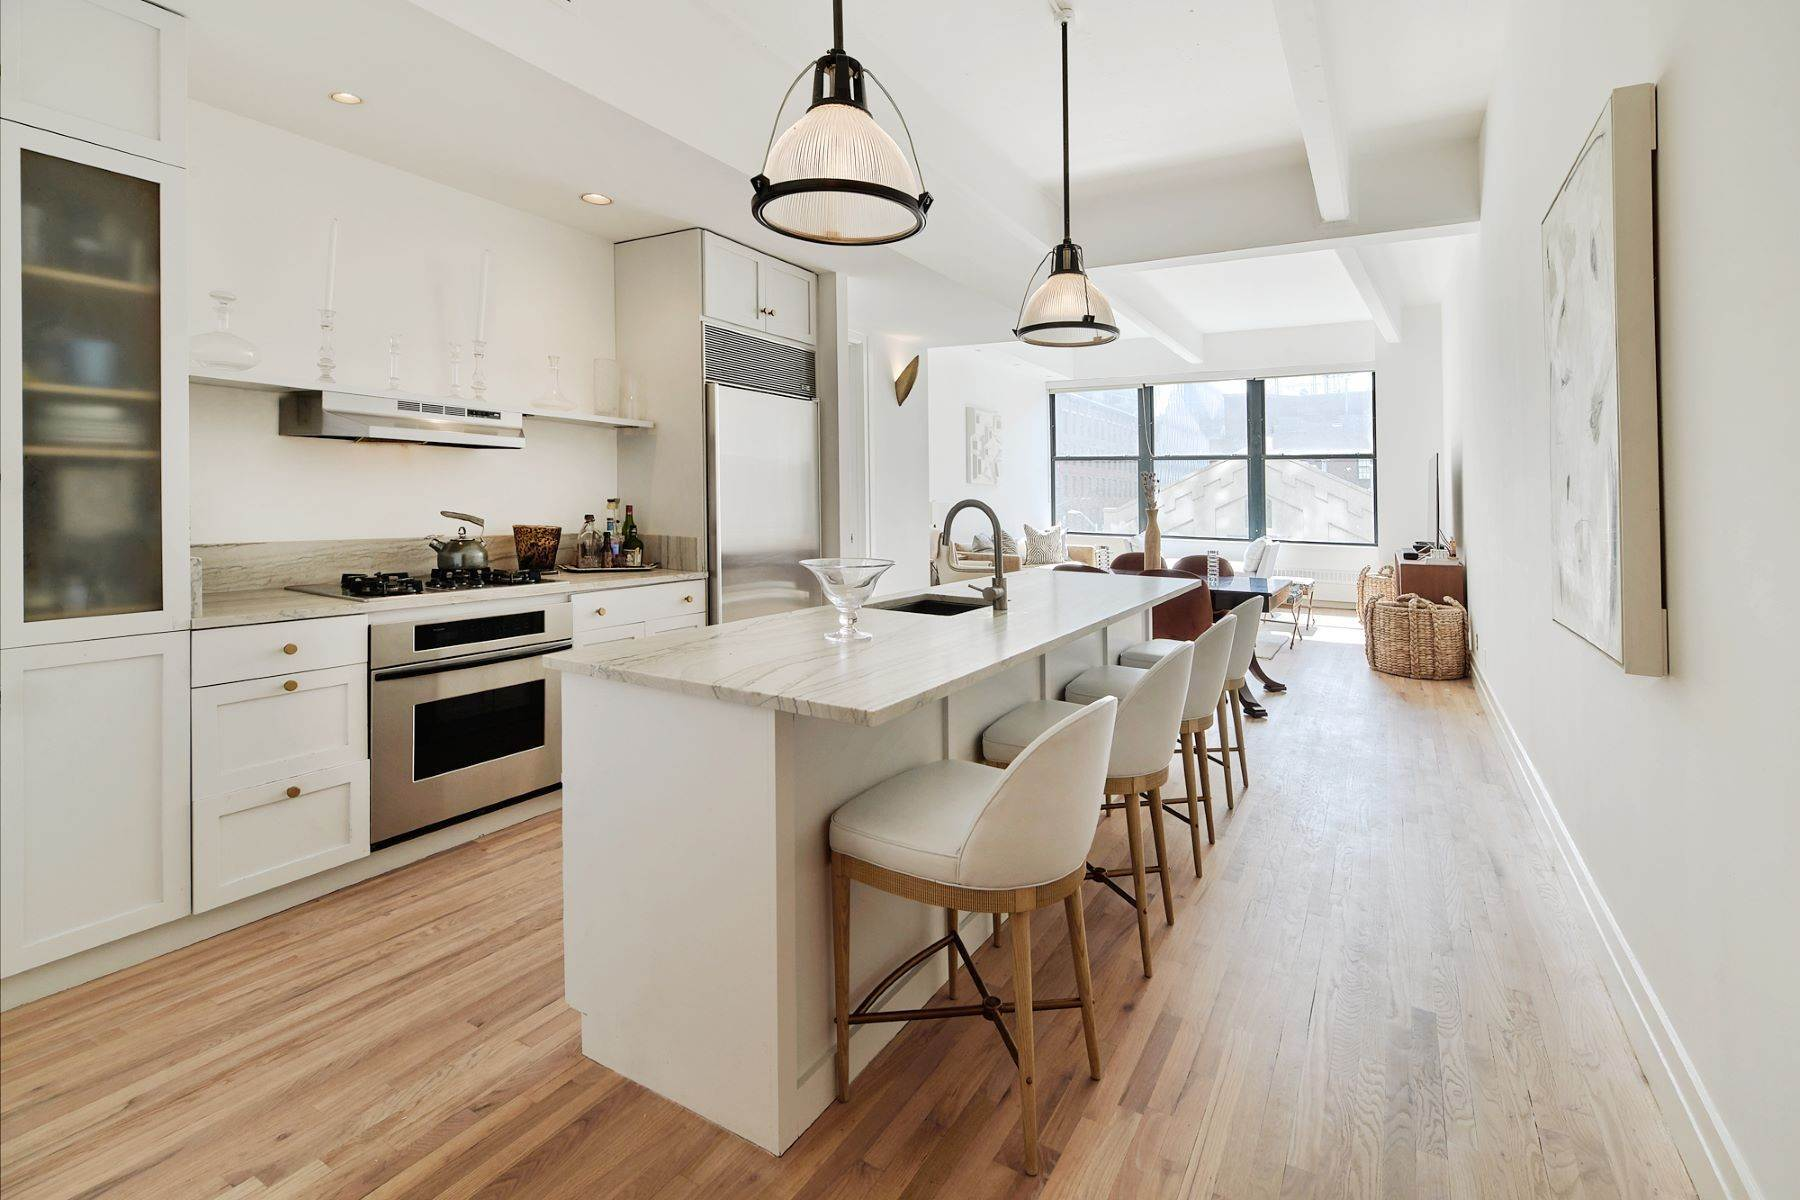 Beautiful Clocktower Dumbo Loft 1 Main Street, Apt 2K Brooklyn, 뉴욕 11201 미국에 Condominiums